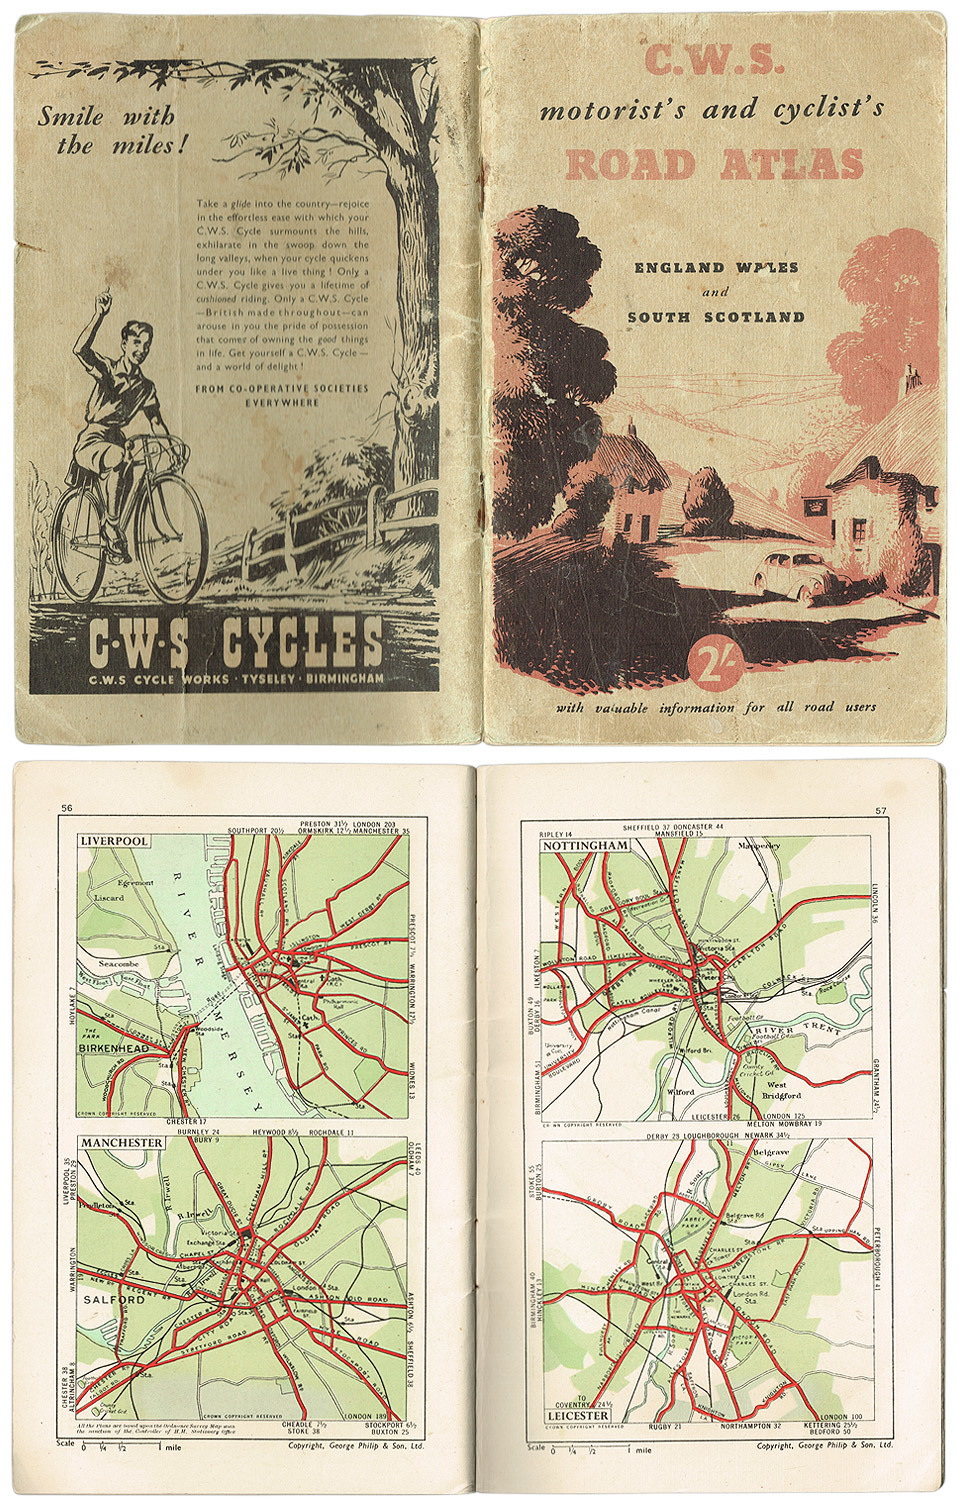 C.W.S Motorist's and Cyclist's Road Atlas, Englad, Wales and South Scotland. Circa 1950.